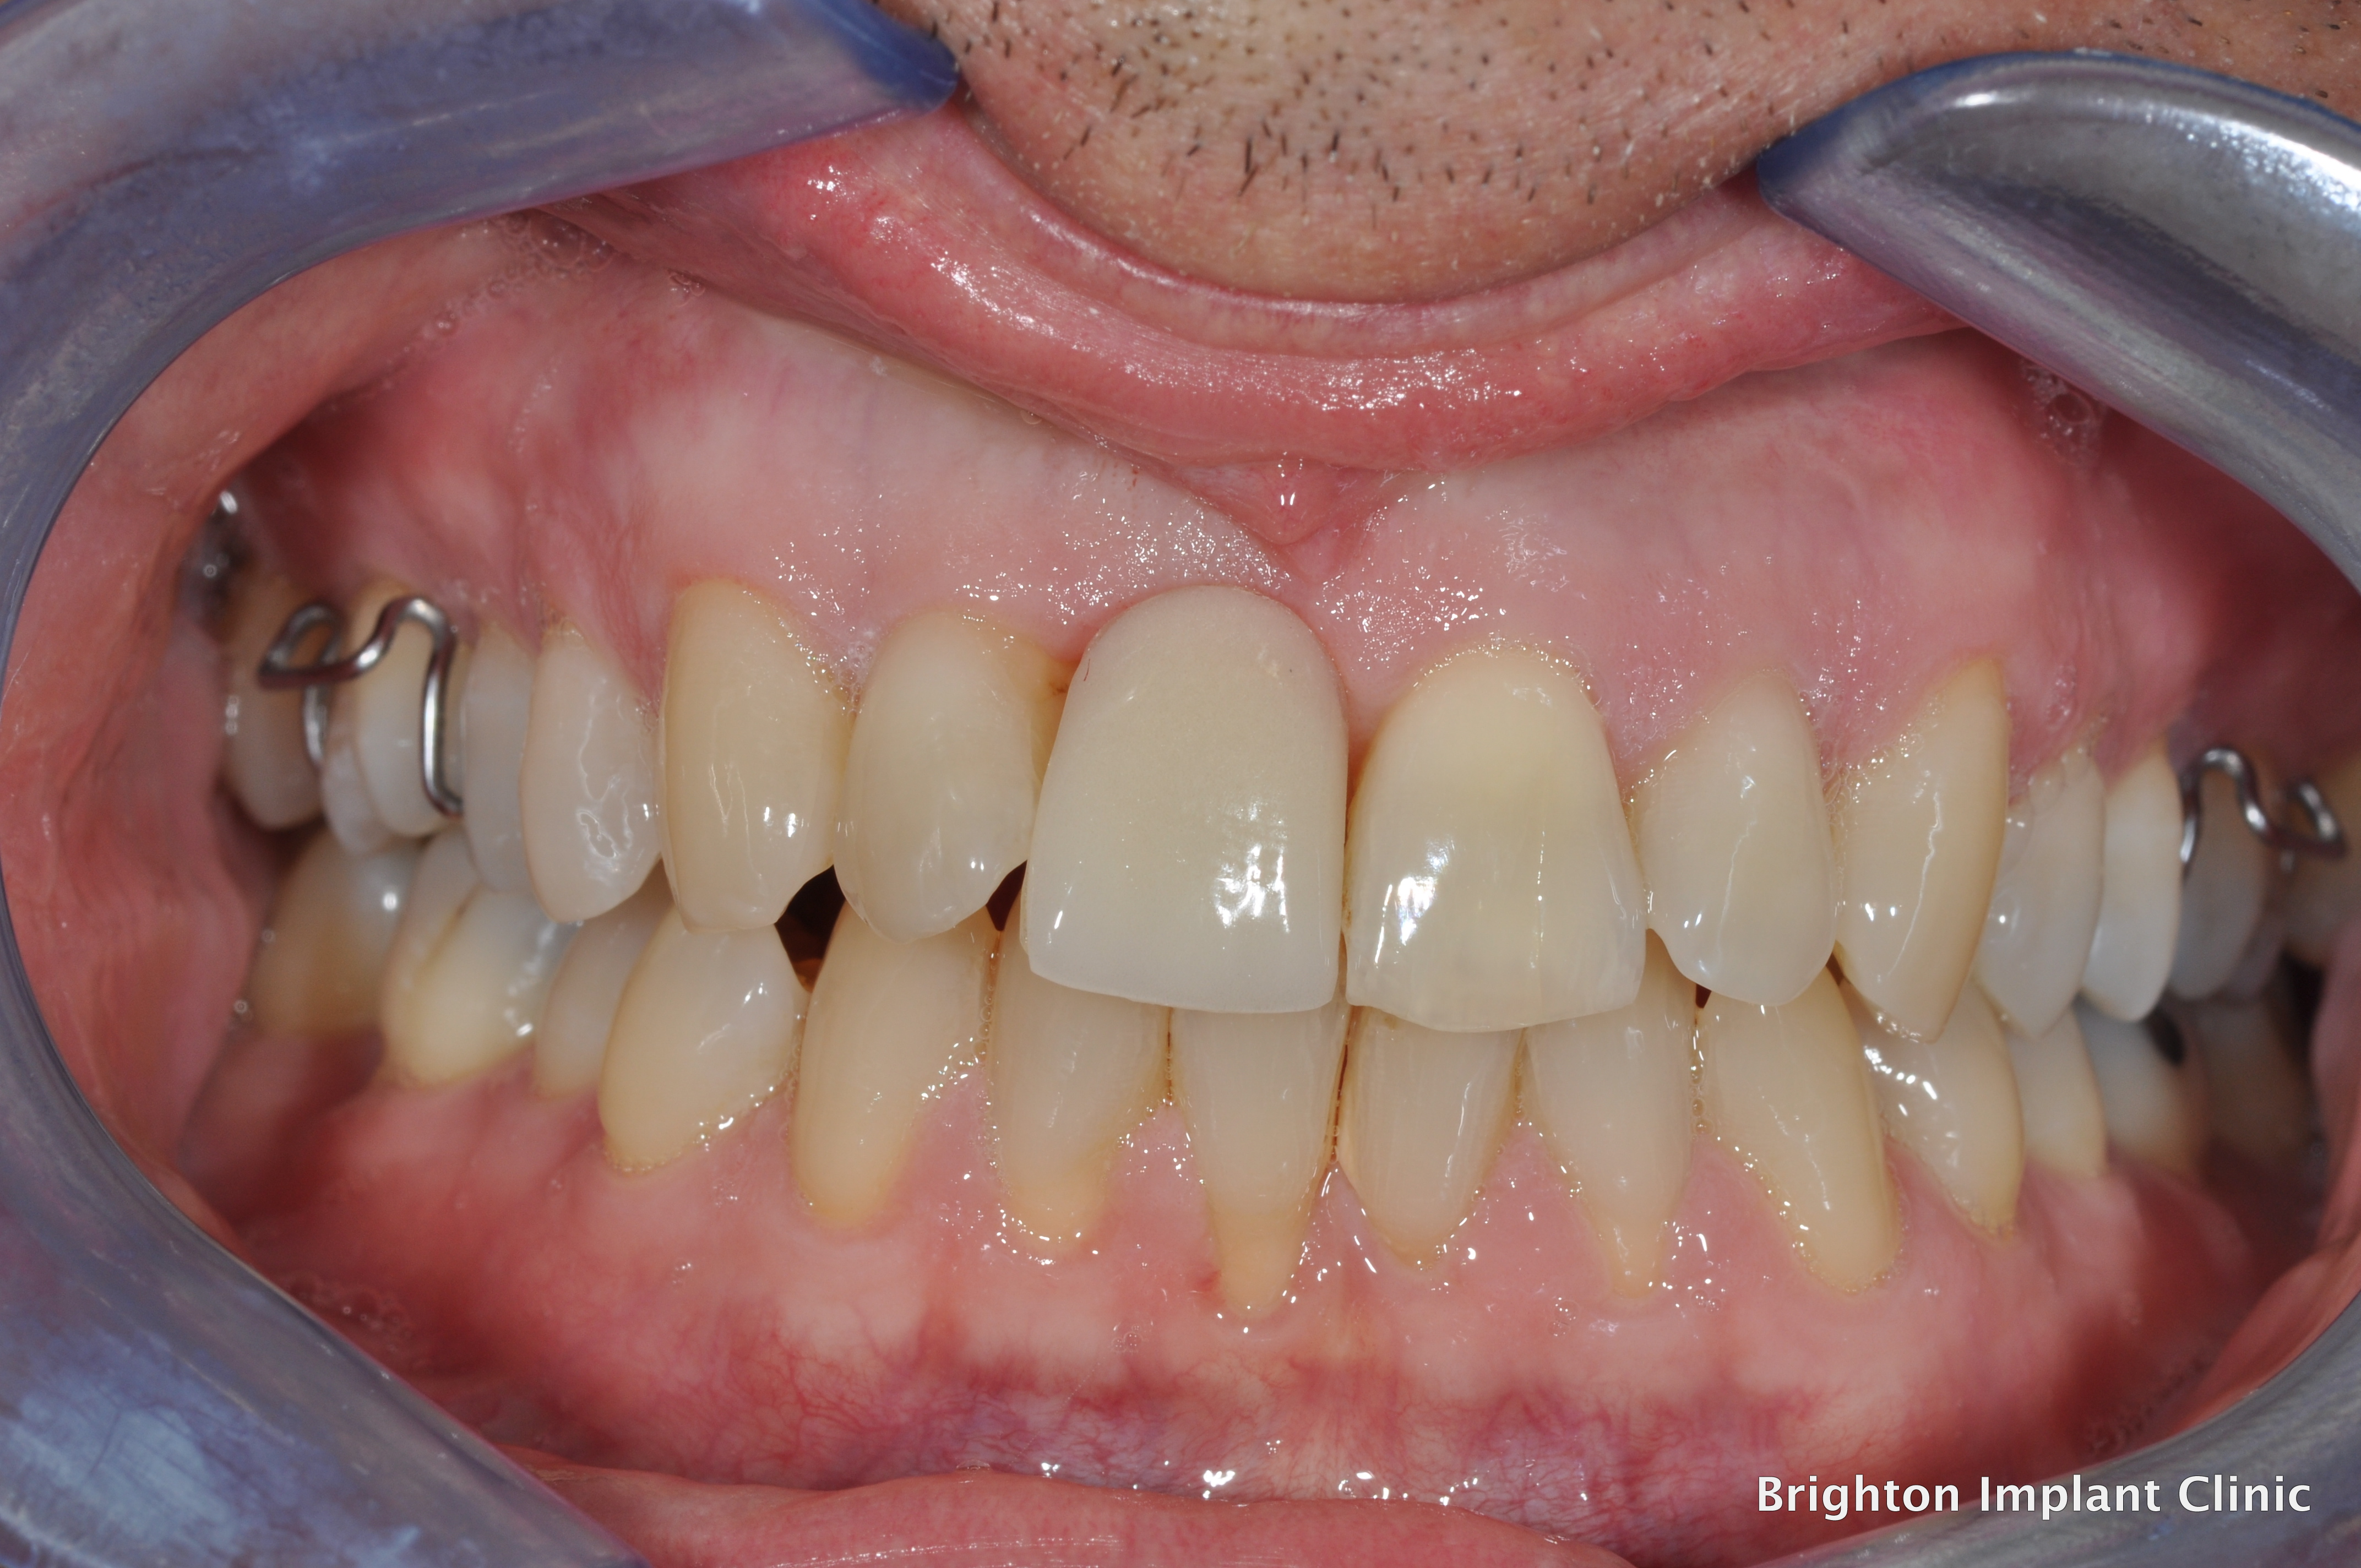 Upper right central incisor replaced with a temporary denture